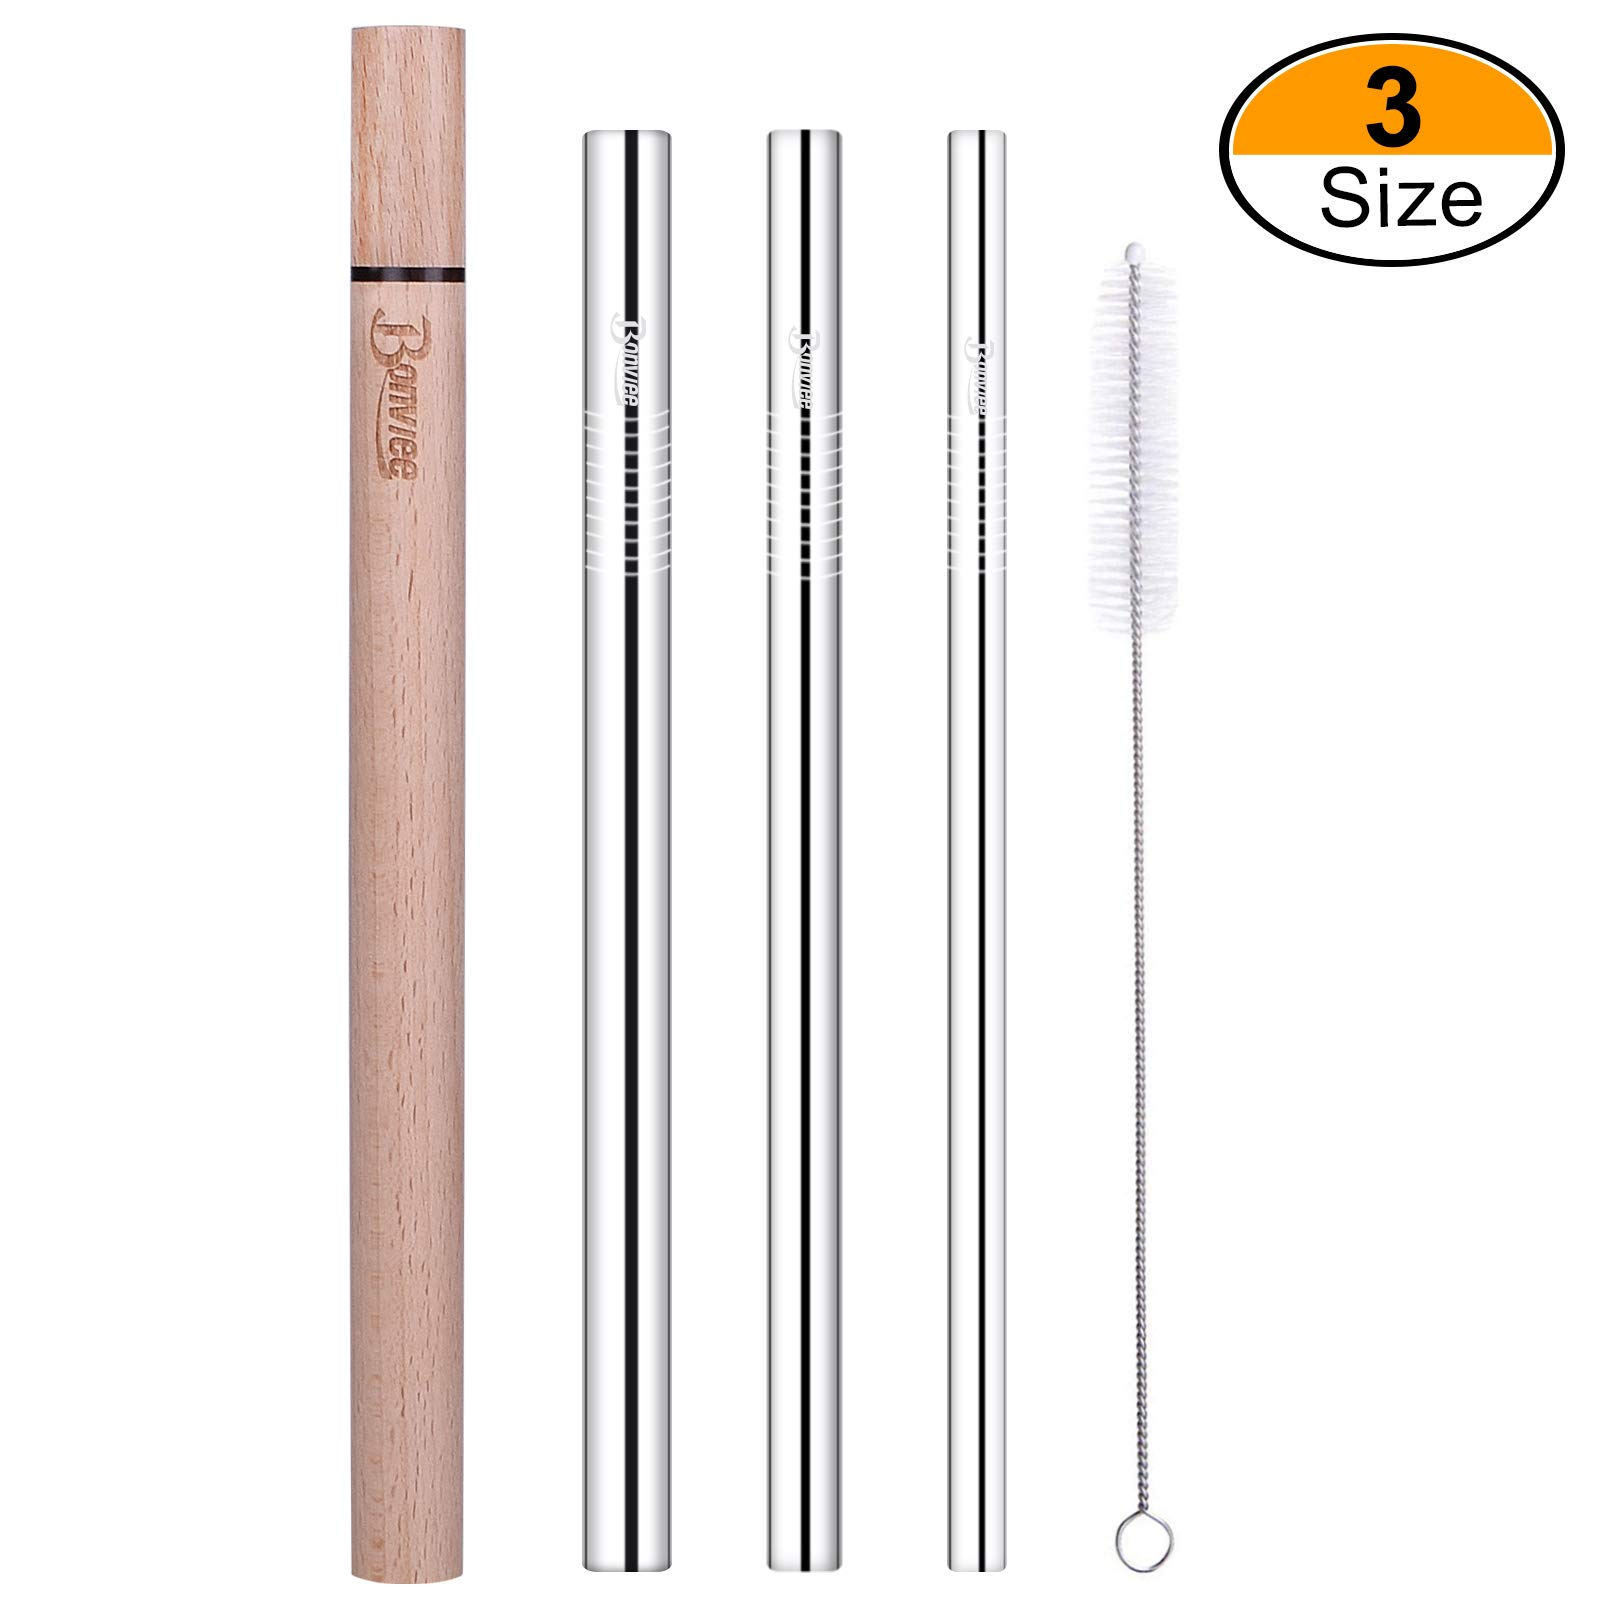 Bonviee Stainless Steel Straws 8.5 Inch Drinking Straws Metal Straws Reusable with Wooden Travel Case and Cleaning Brush Metal Drinking Straws for 20 OZ Tumbler YETI Cups (3 Size: 6/8/10mm Dia.)